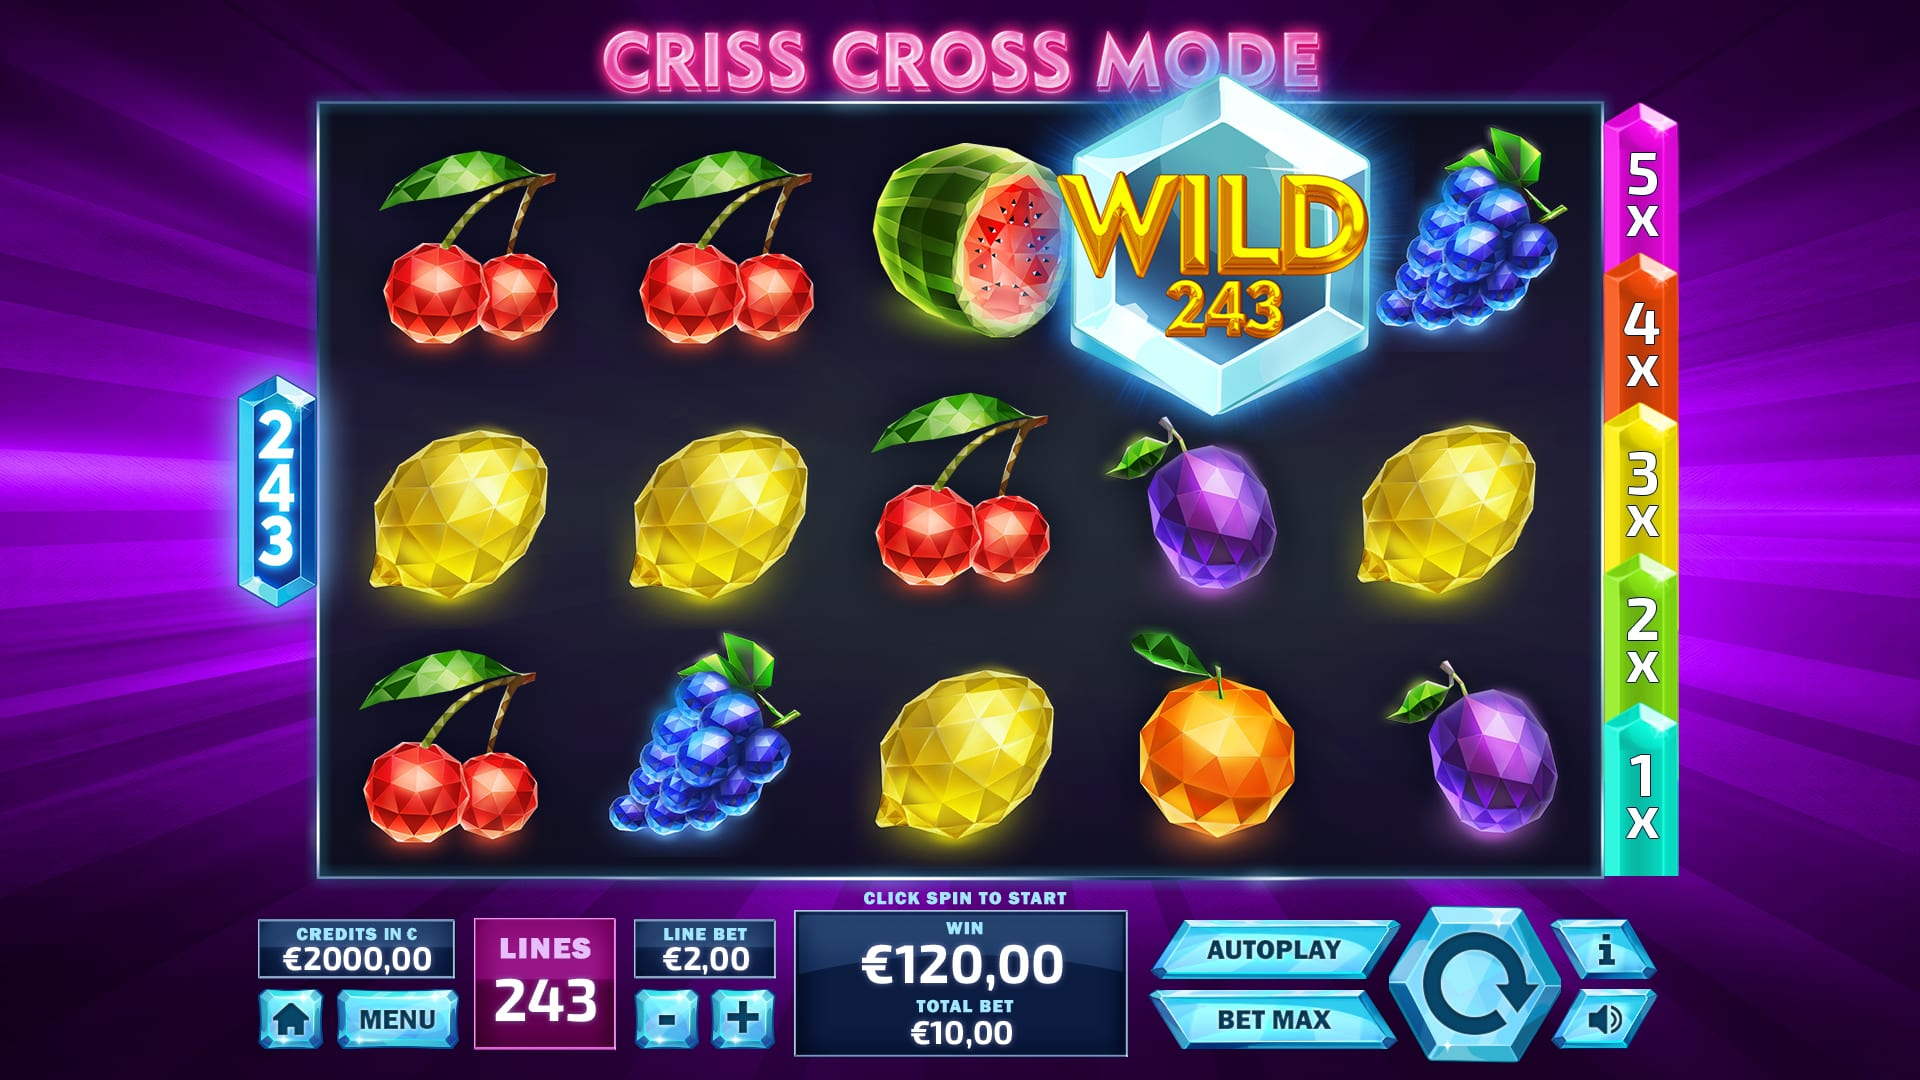 243 crystal fruits: criss cross mode